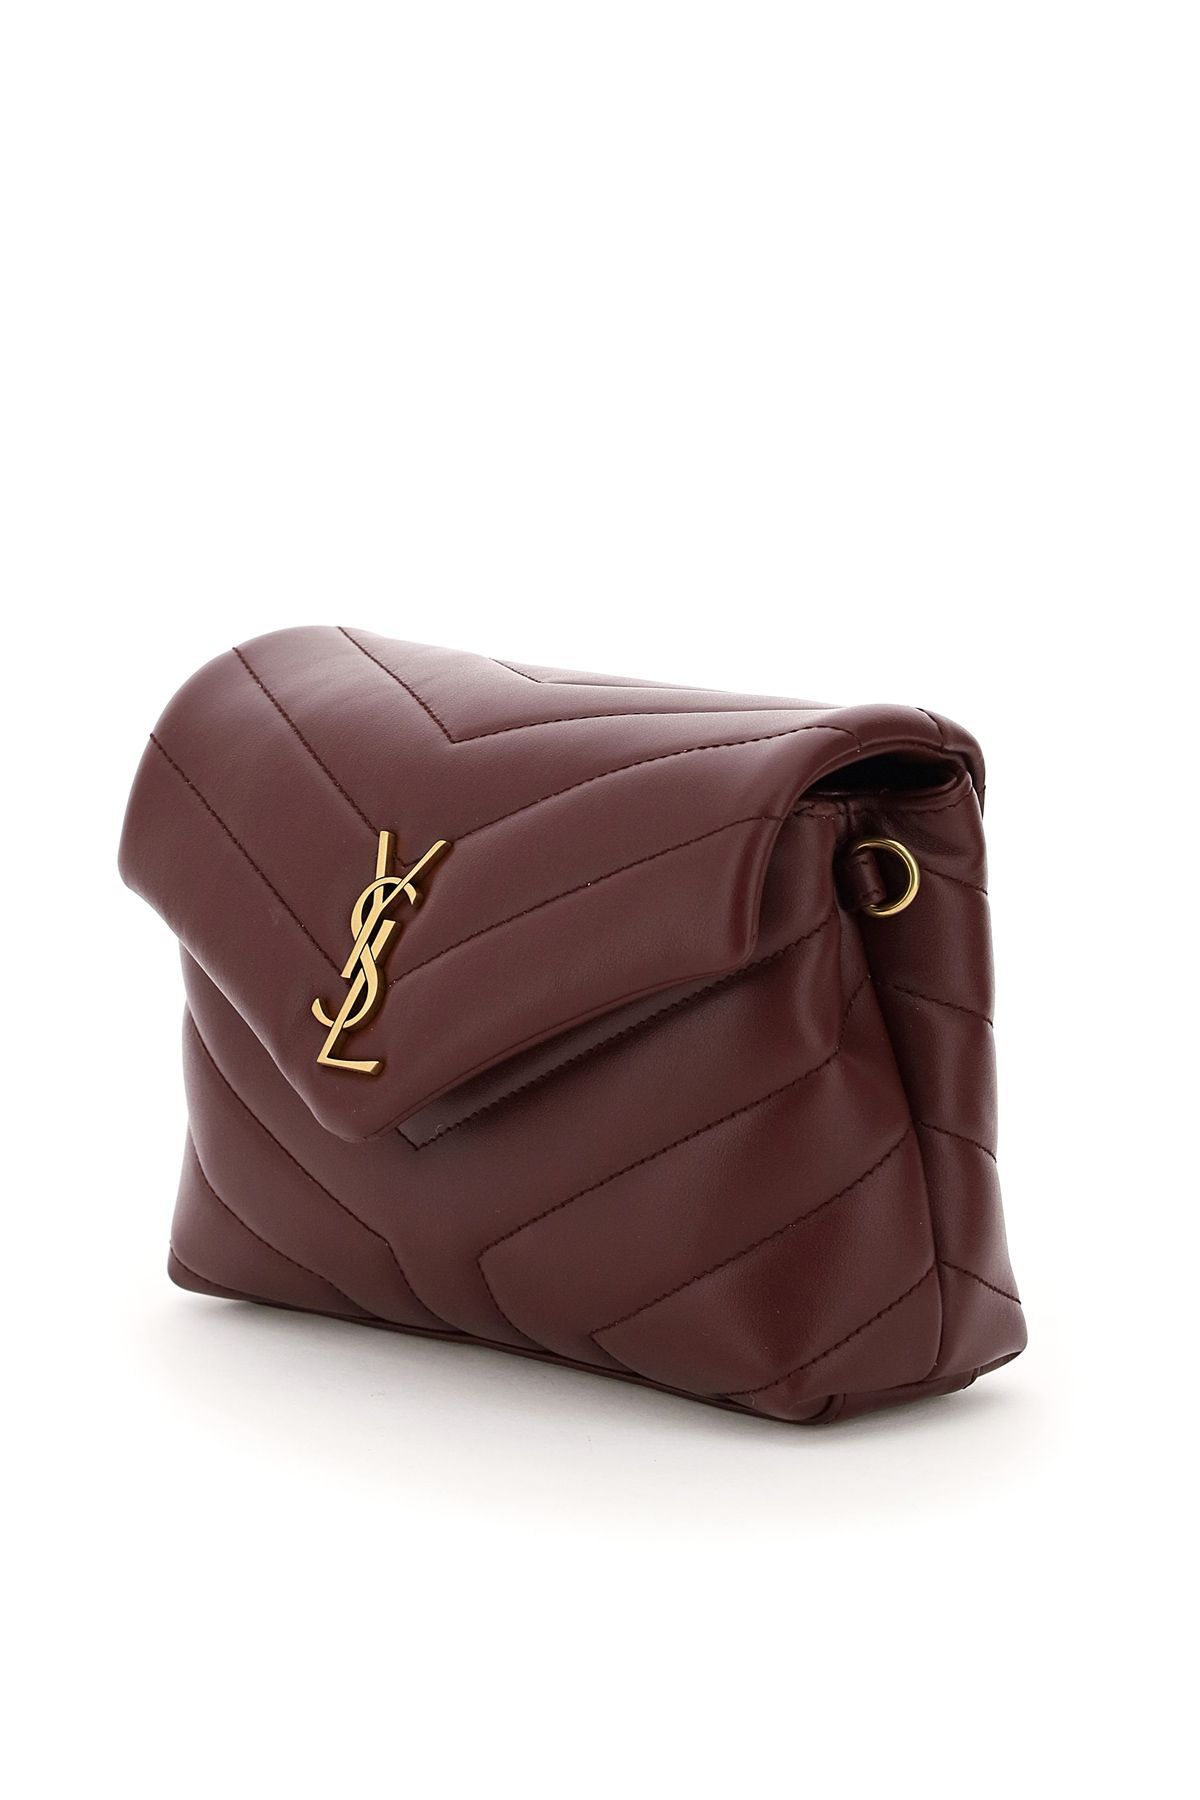 saint laurent bags women loulou toy quilted mini bag